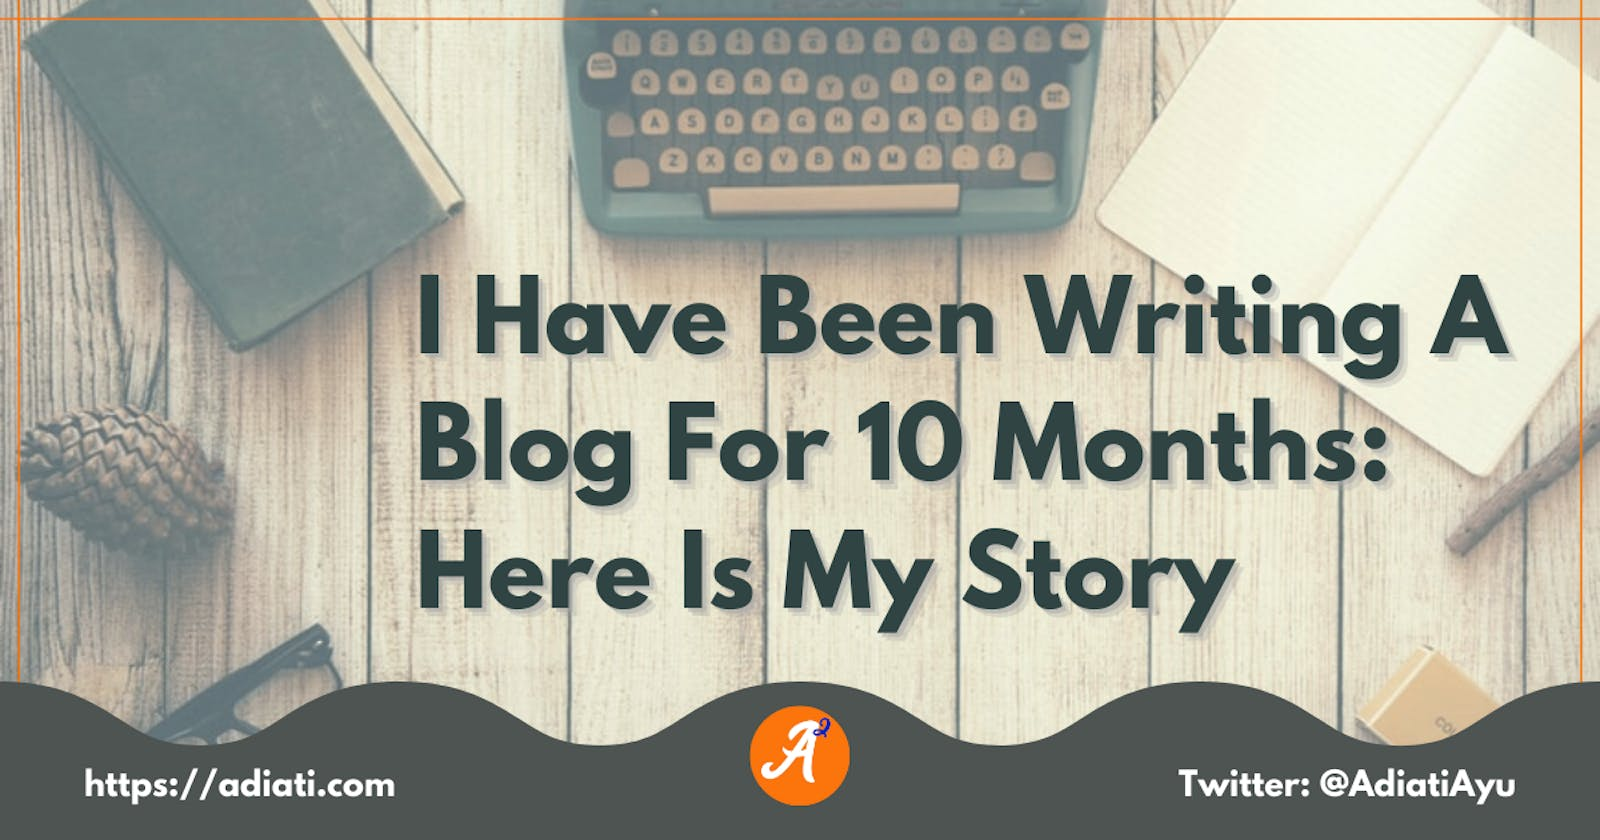 I Have Been Writing A Blog For 10 Months: Here Is My Story